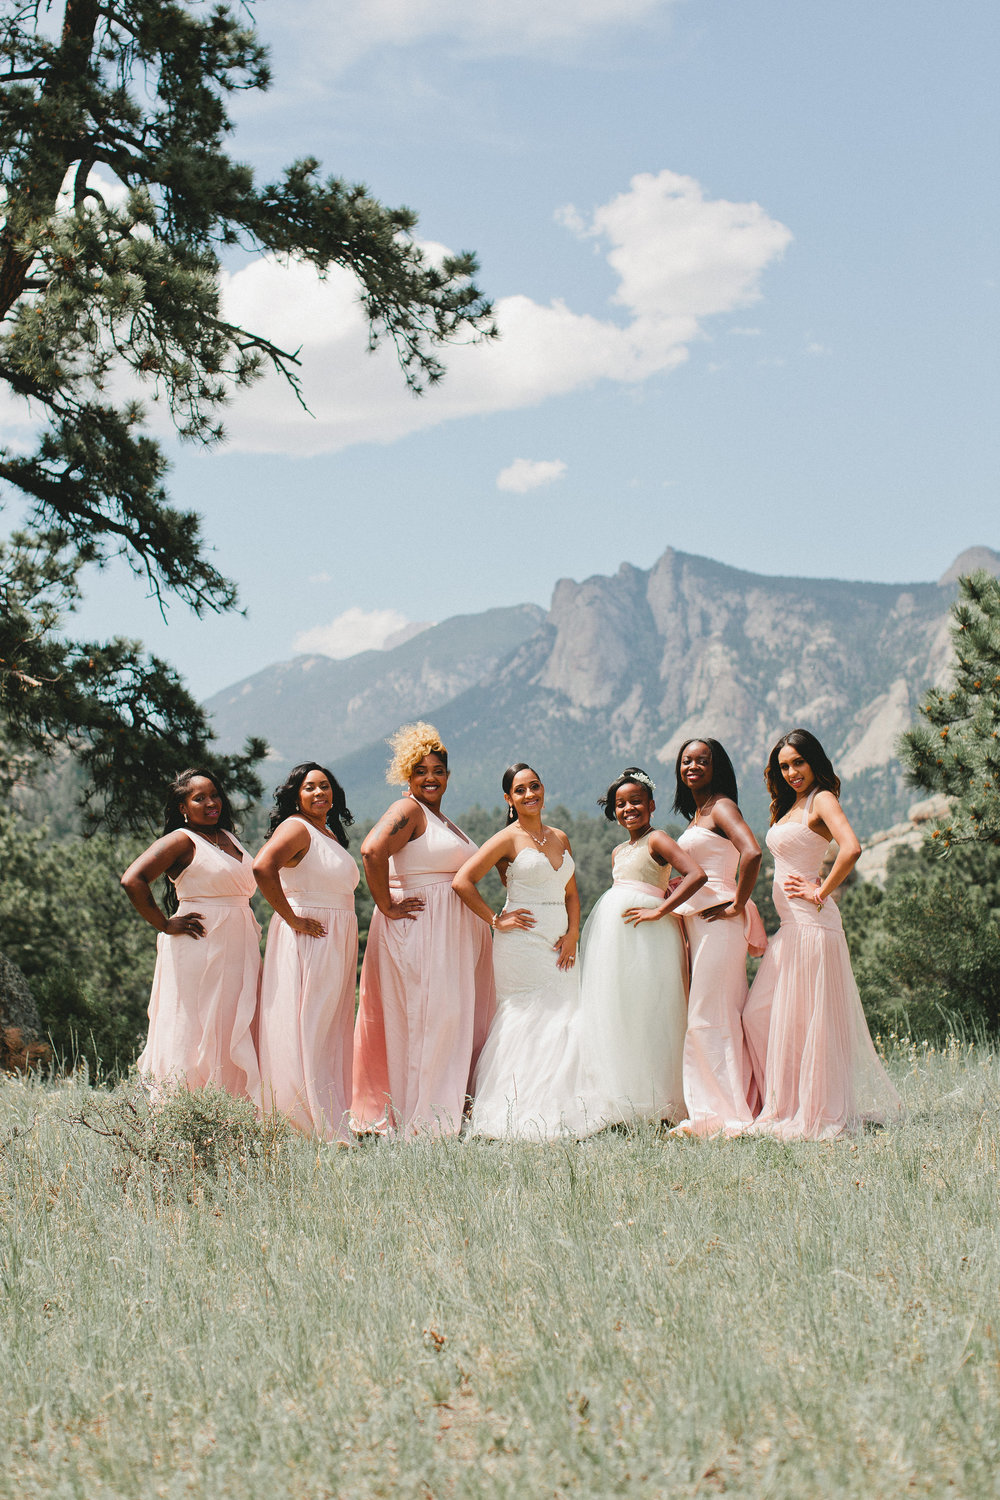 knm-portraits-alvina-valenta-9451-blush-wedding-dress-ti-adora-7552-loveland-colorado-wedding-mountain-wedding-ivory-and-beau-bridal-boutique-savannah-wedding-dresses-savannah-bridal-boutique-savannah-bridal-gowns-savannah-weddings-7.jpg